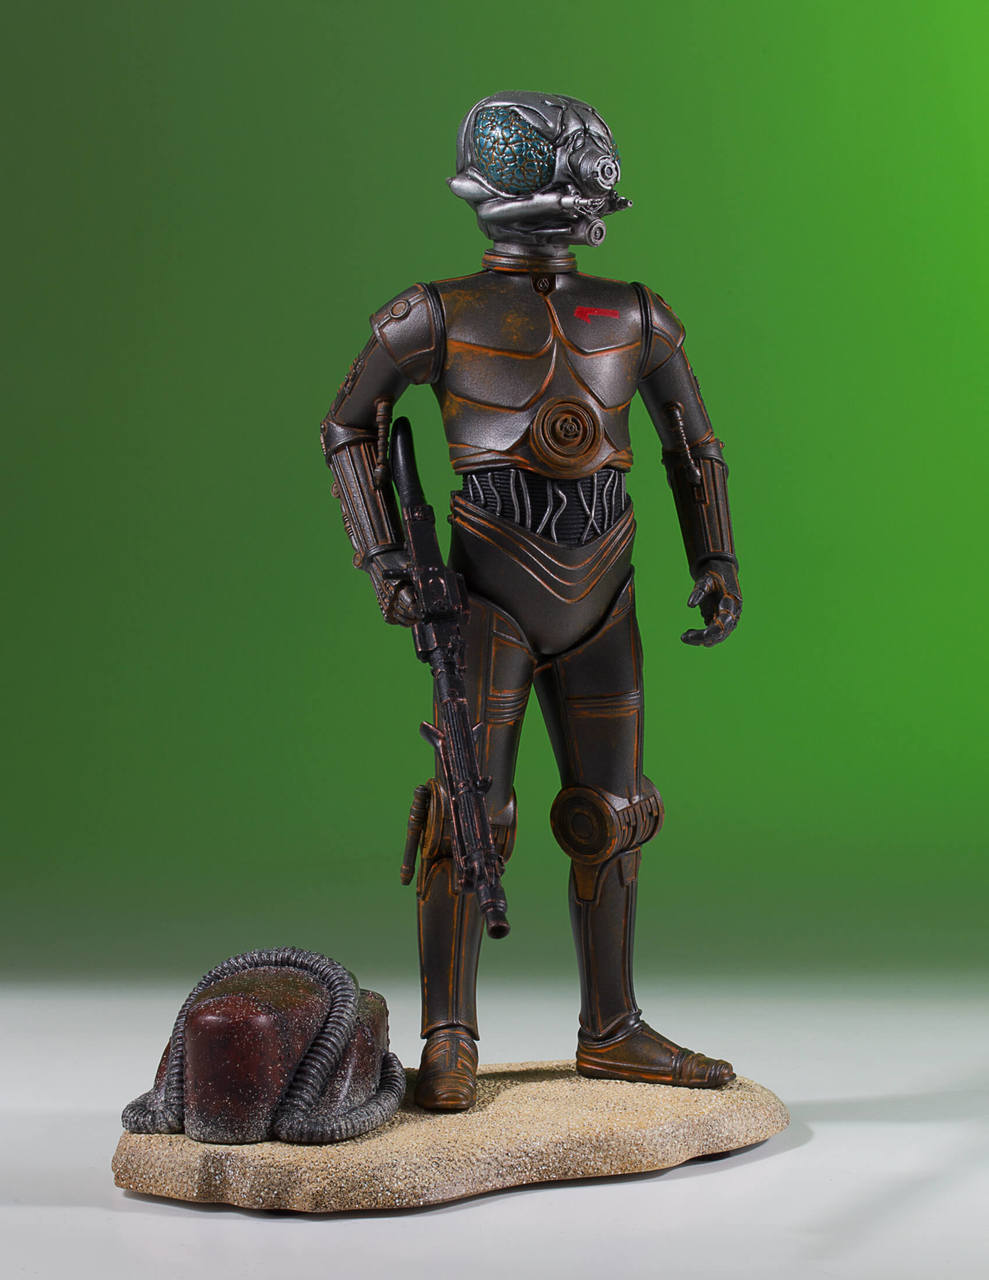 Gentle Giant <a href='/personnage-201-boba-fett.html' class='qtip_motcle' tt_type='personnage' tt_id=201>Boba Fett</a> Collector's Gallery 2